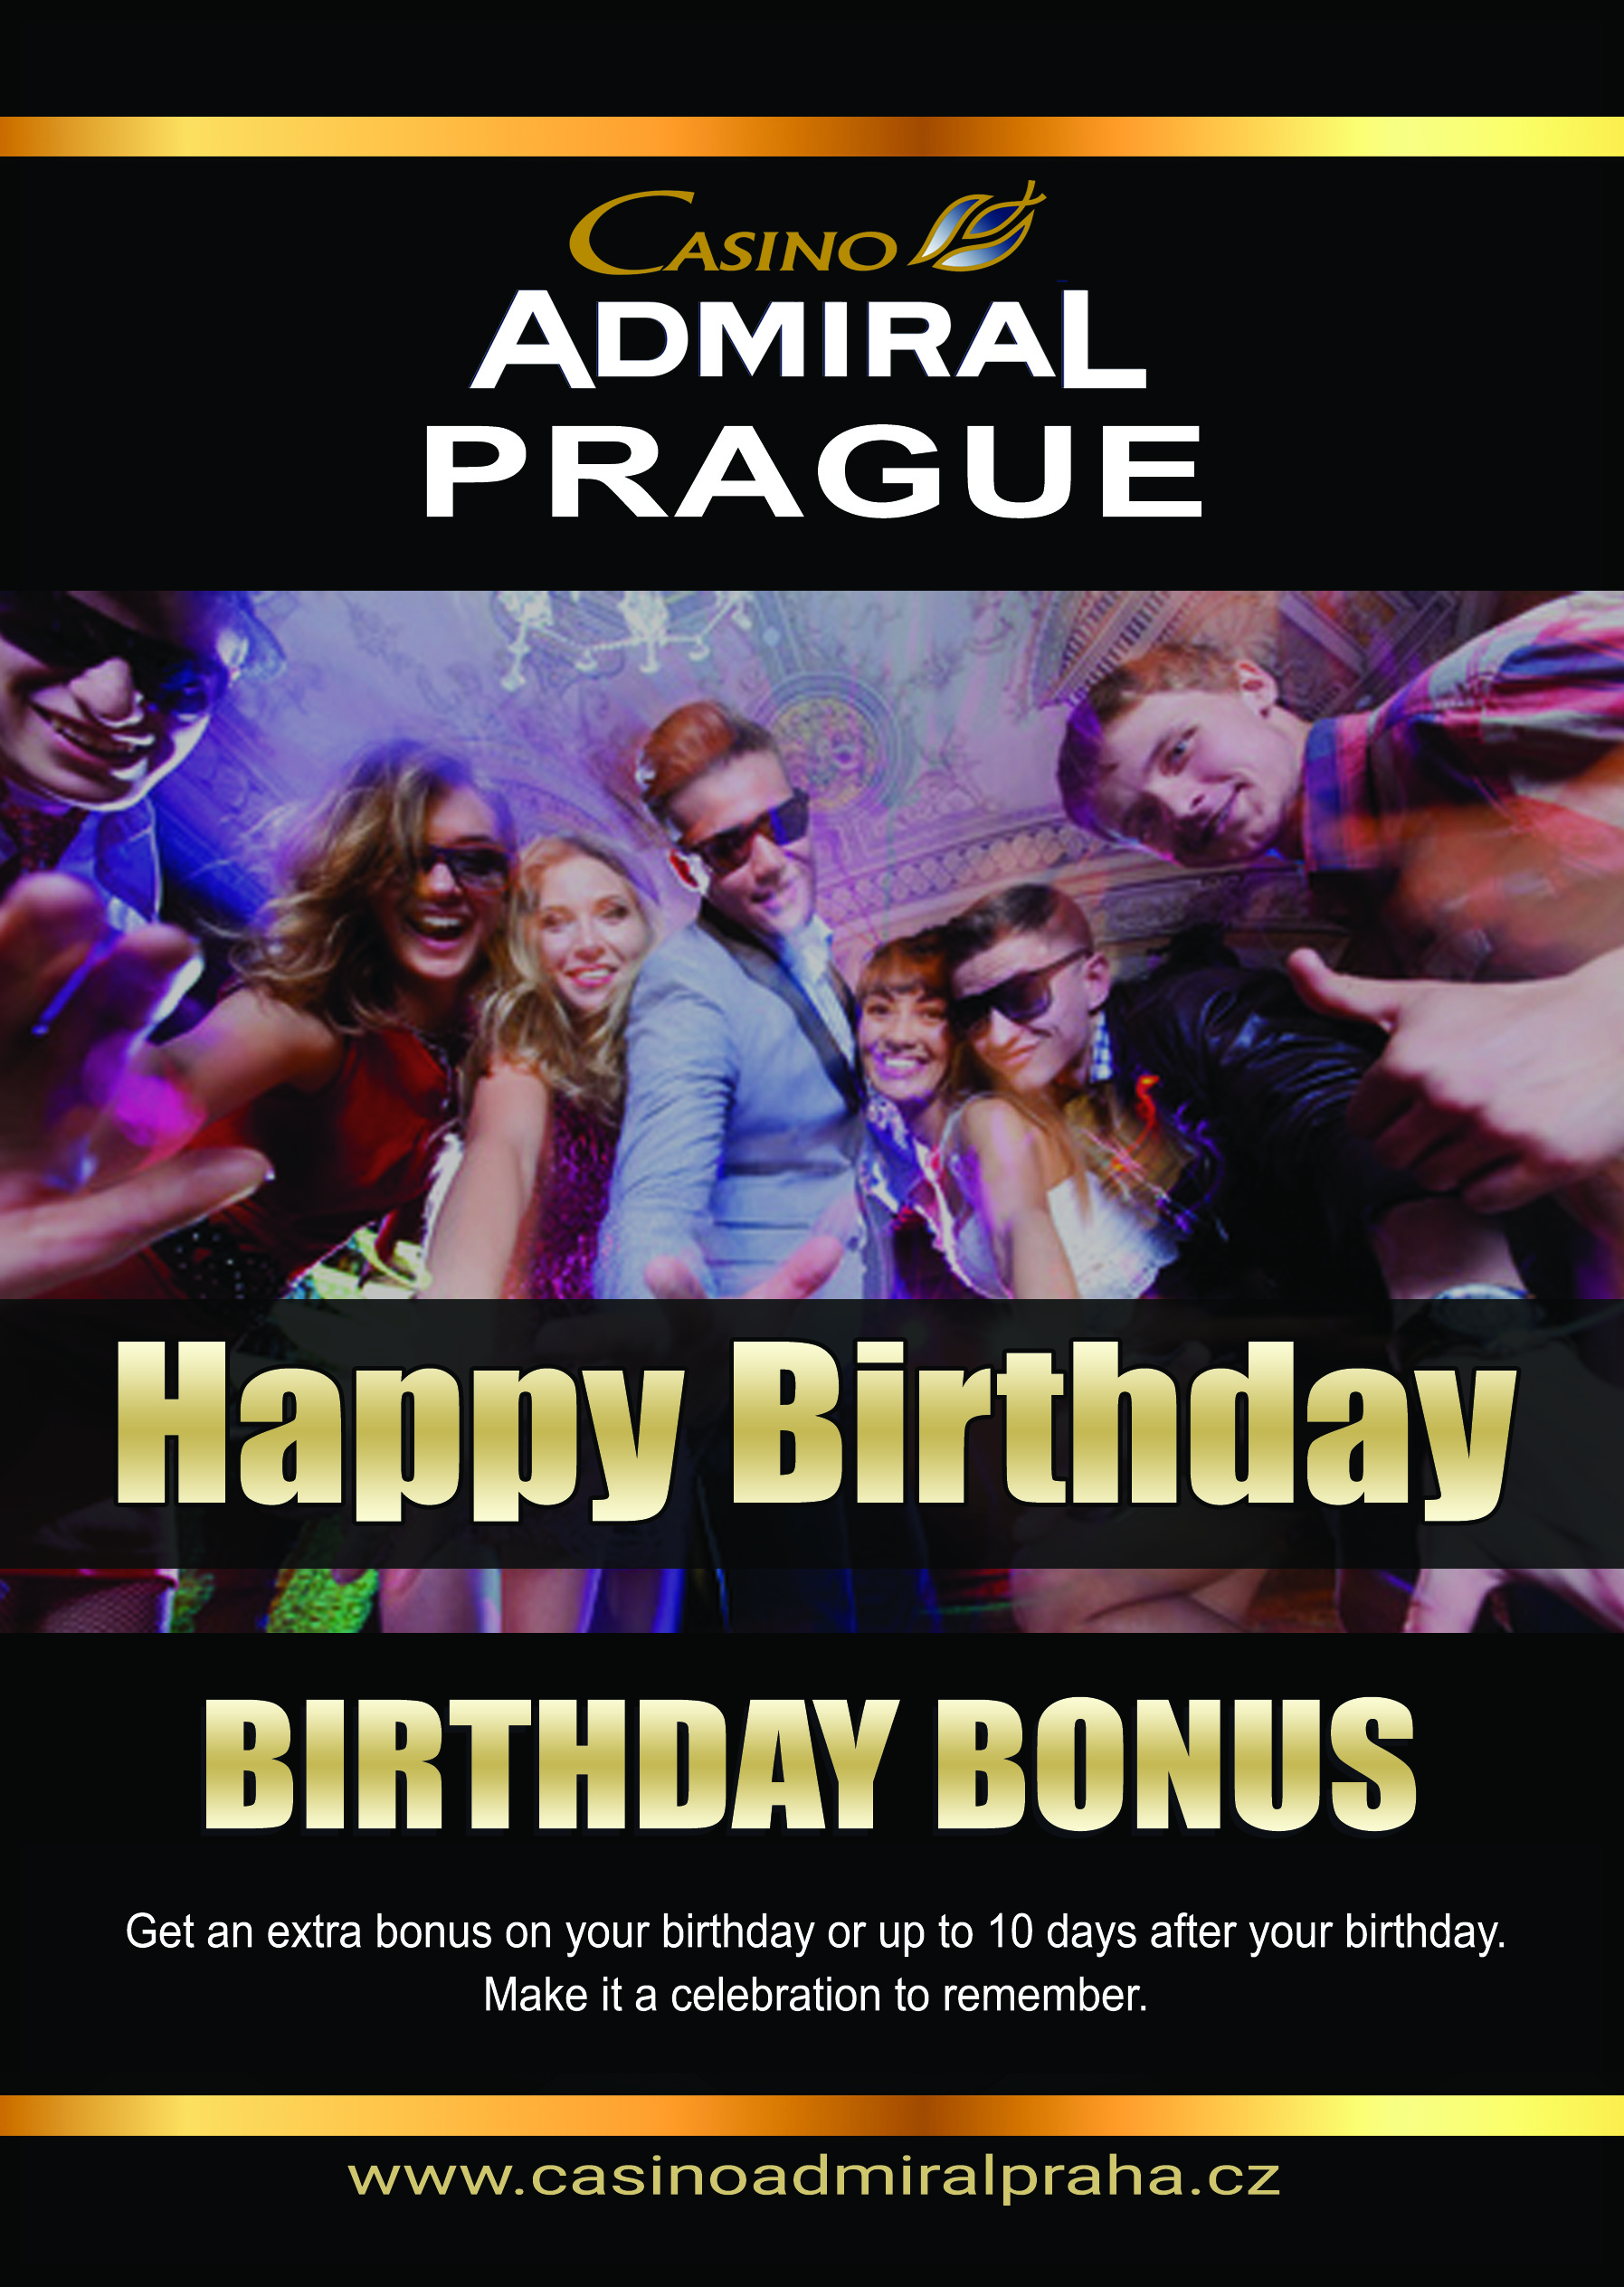 HappyBirthday Casino Admiral Prague